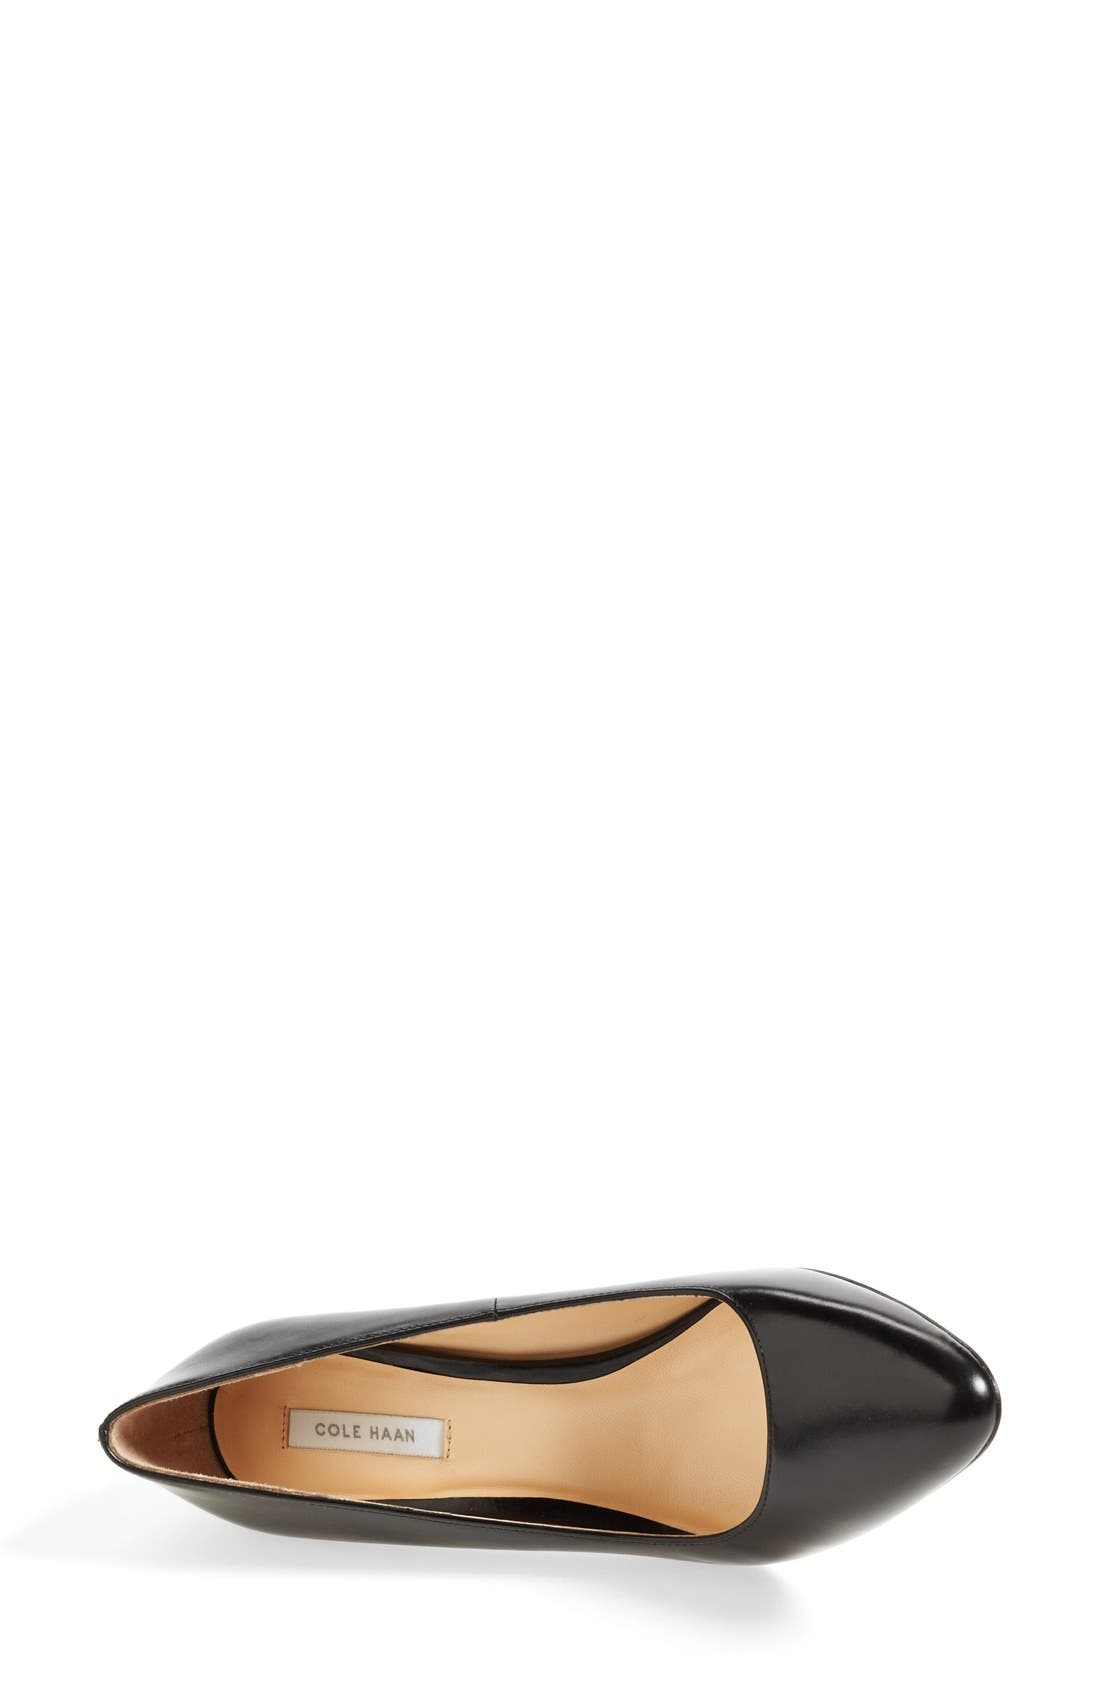 Alternate Image 3  - Cole Haan 'Bethany' Leather Pump (Women)